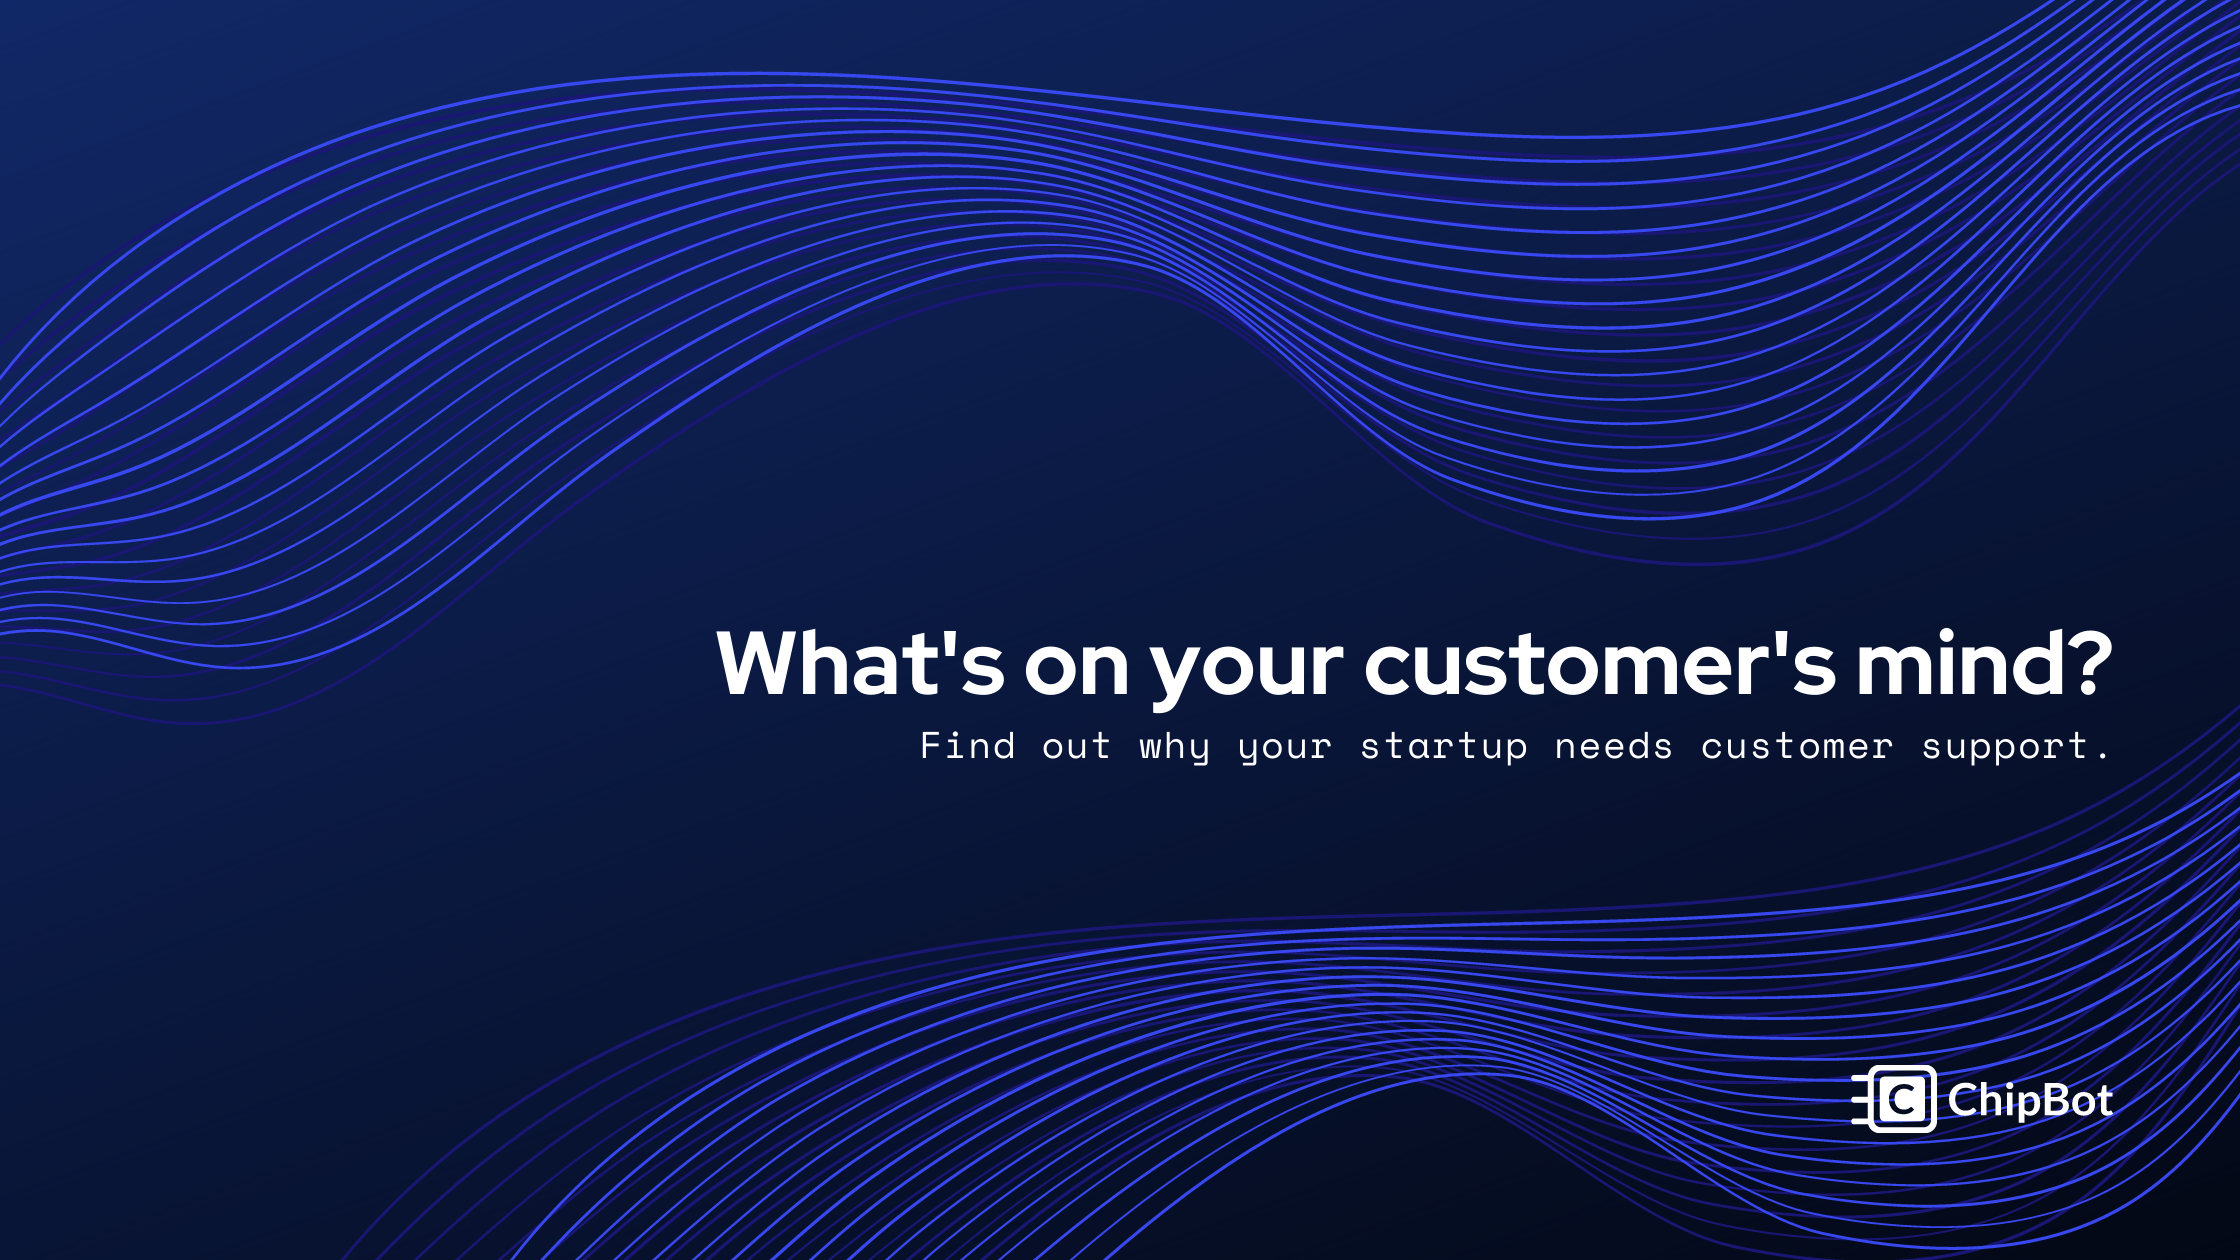 Startup Customer Support Needs a Part in the Process